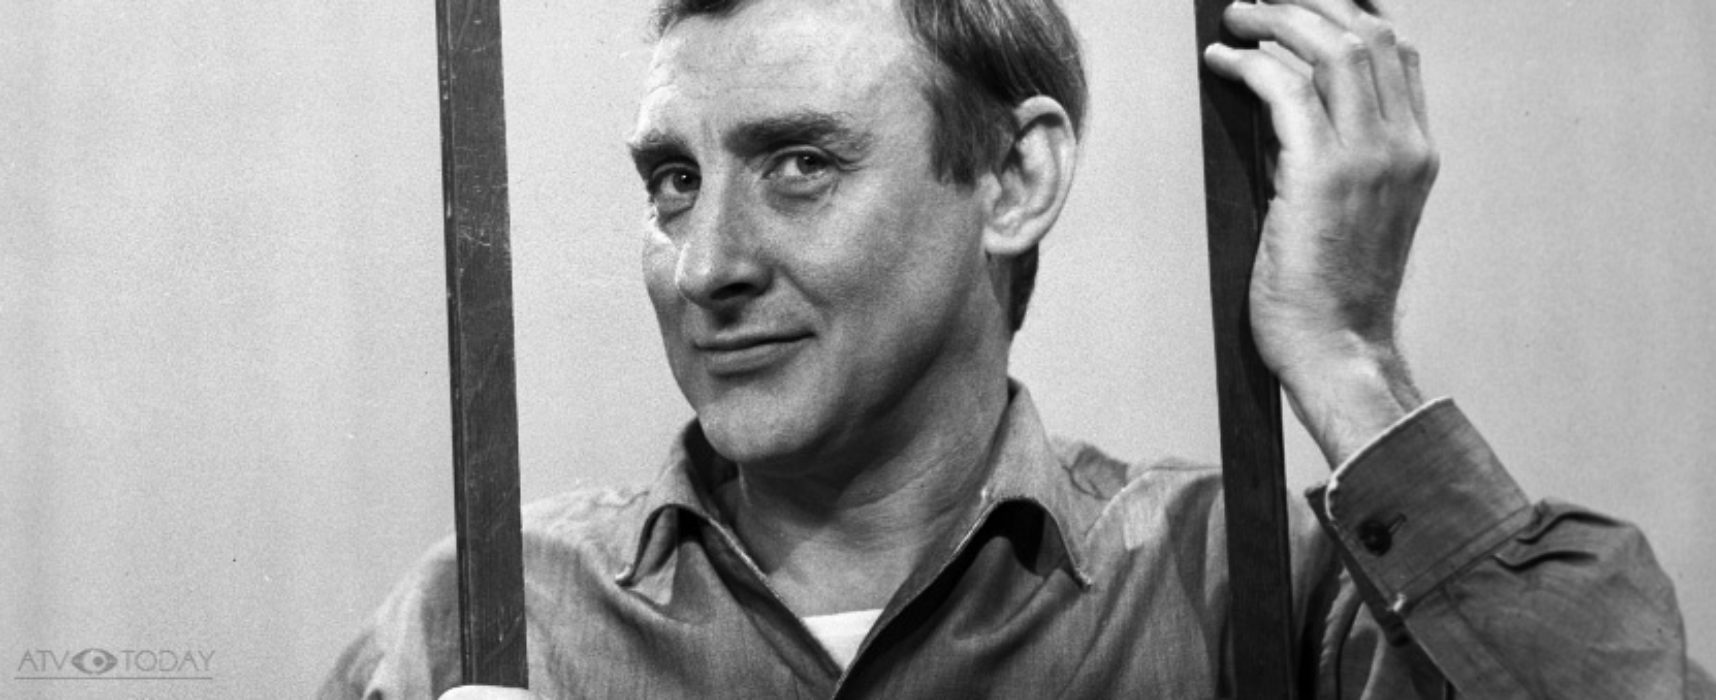 Spike Milligan's Q comes to DVD